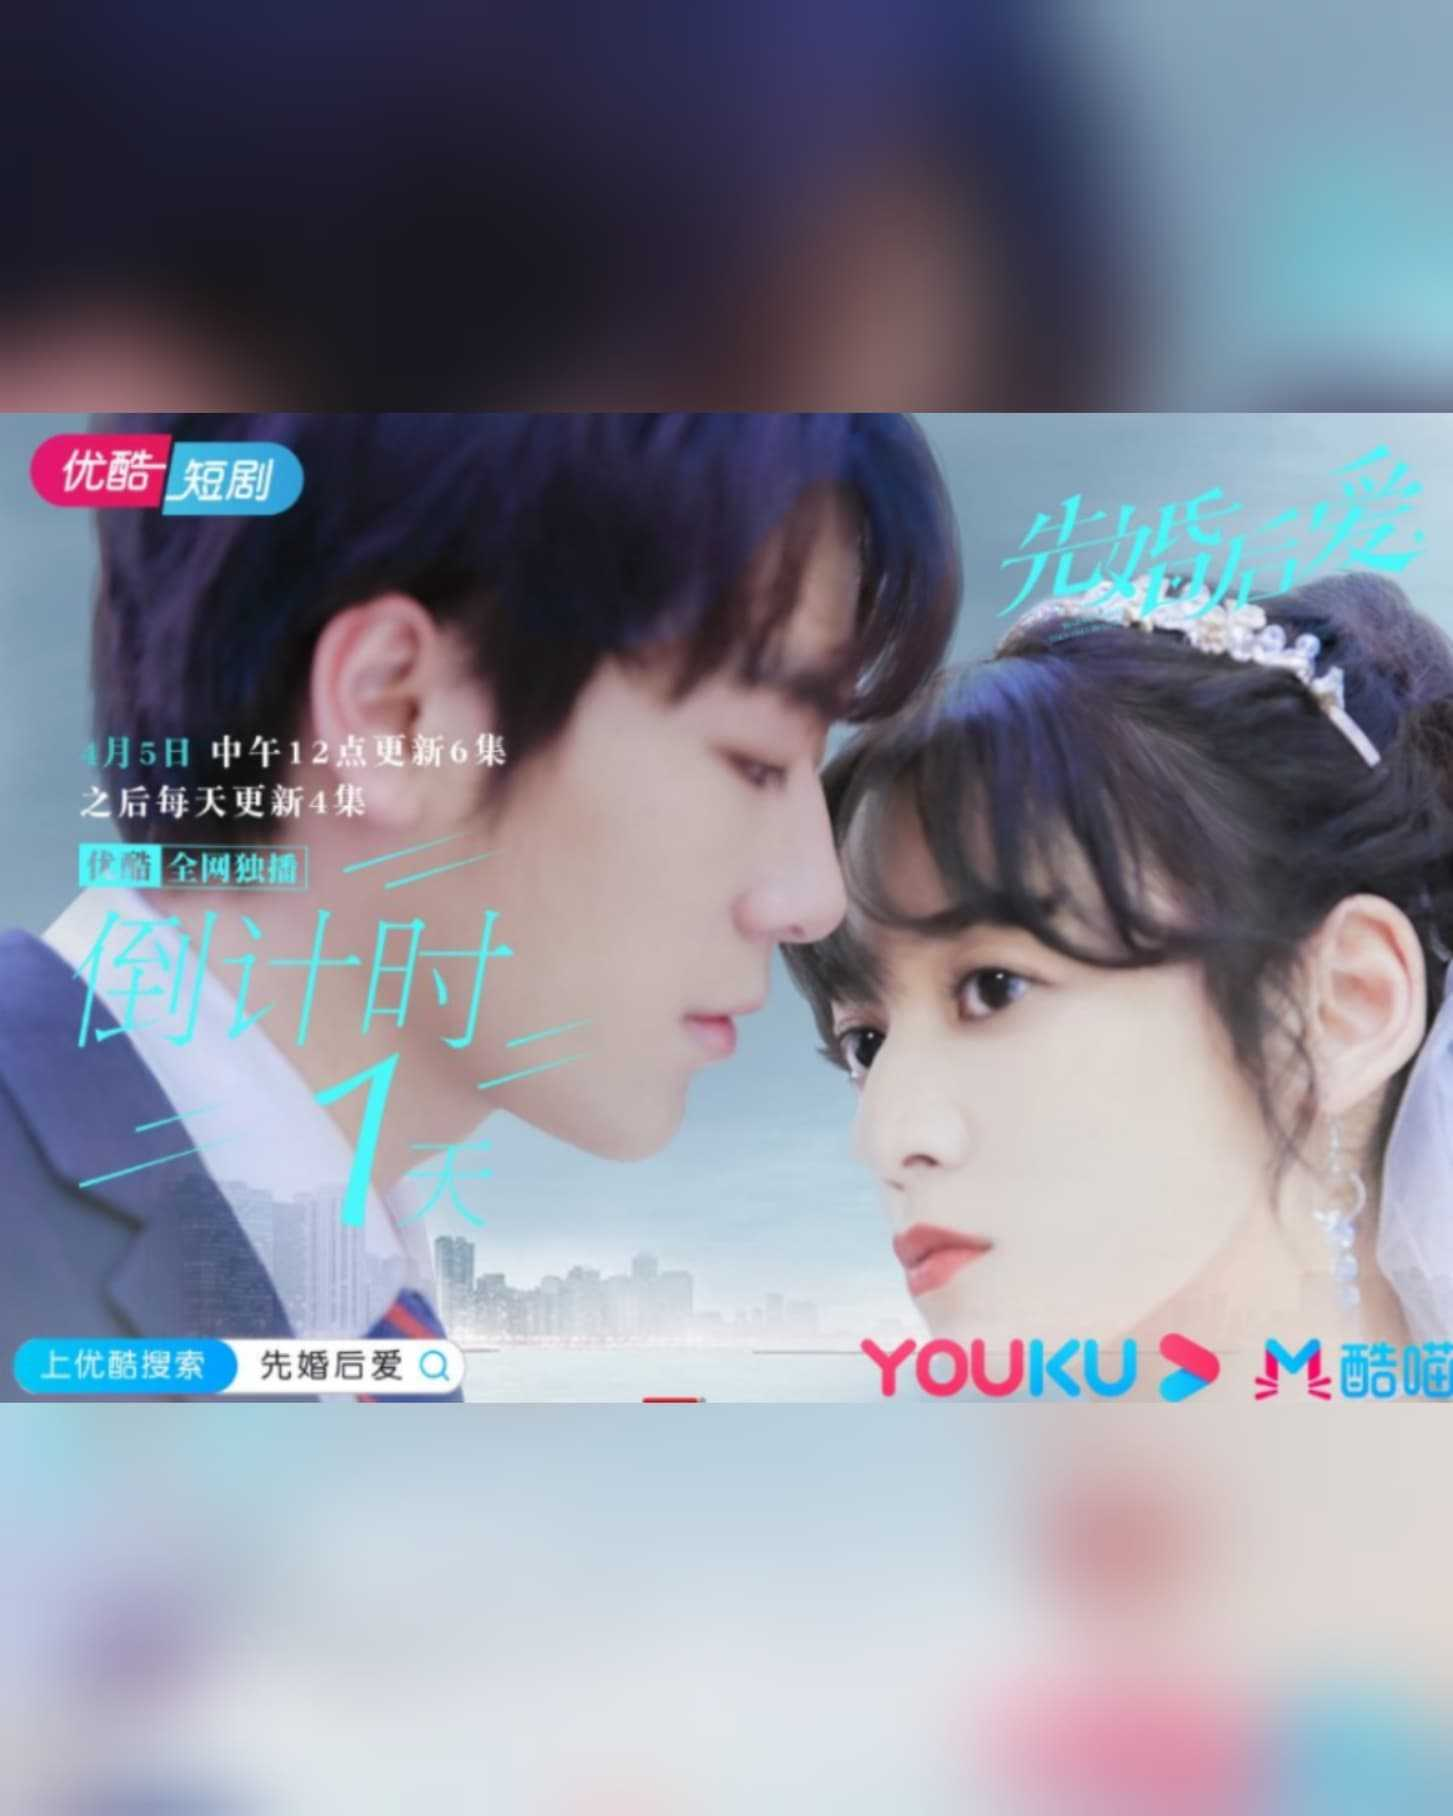 married-first-and-love-later-2021-ซับไทย-1-10-ยังไม่จบ-